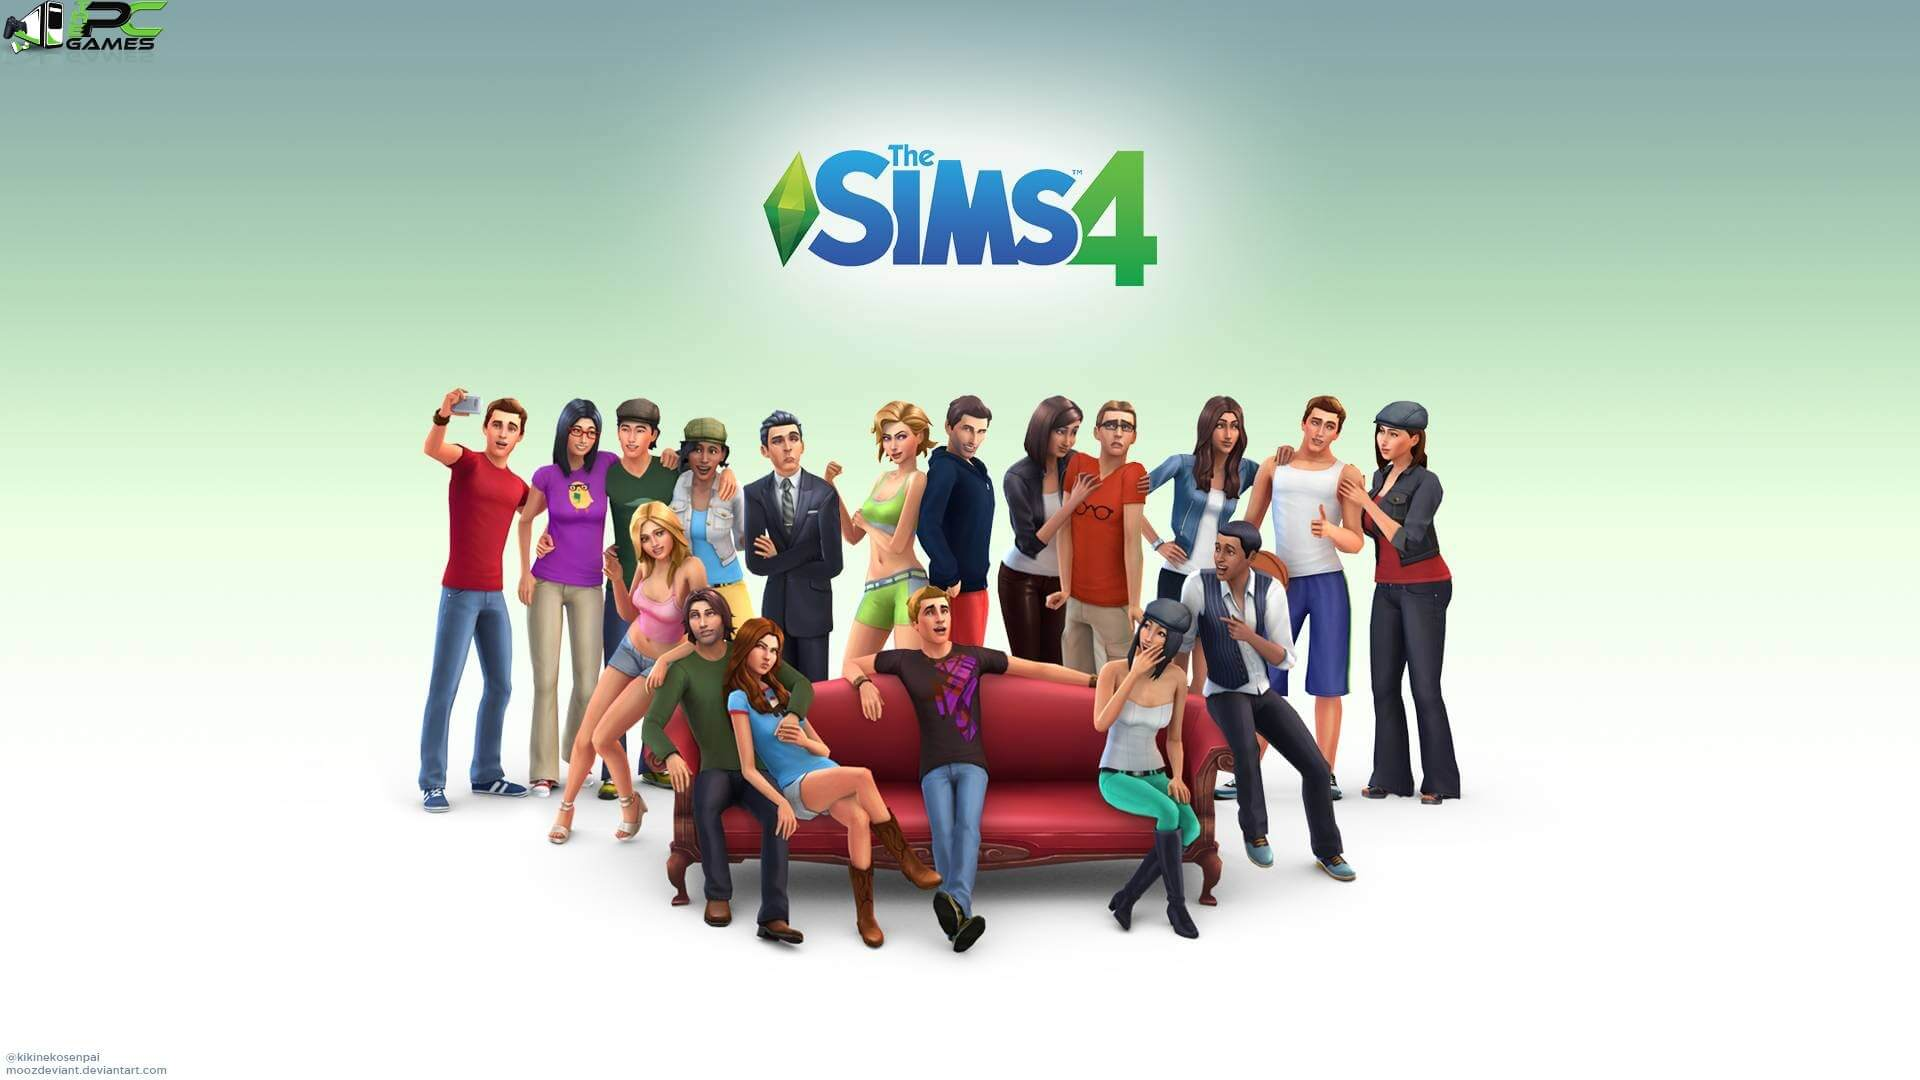 The Sims 4 Digital Deluxe Edition Free Download